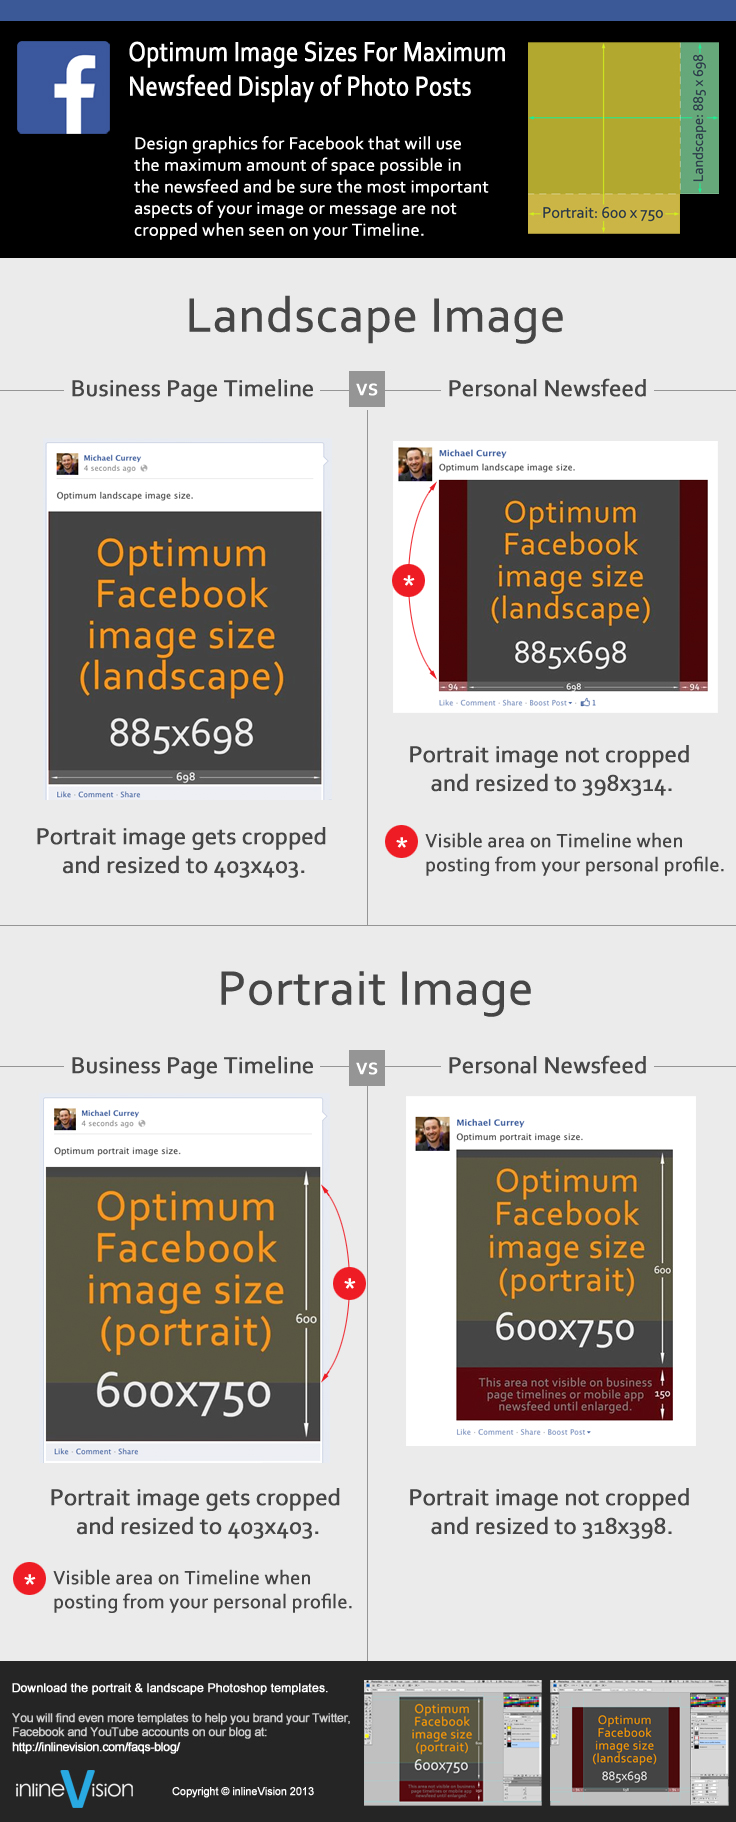 Poster design dimensions - Infographic Optimum Image Sizes For Maximum Newsfeed Display Of Photo Posts